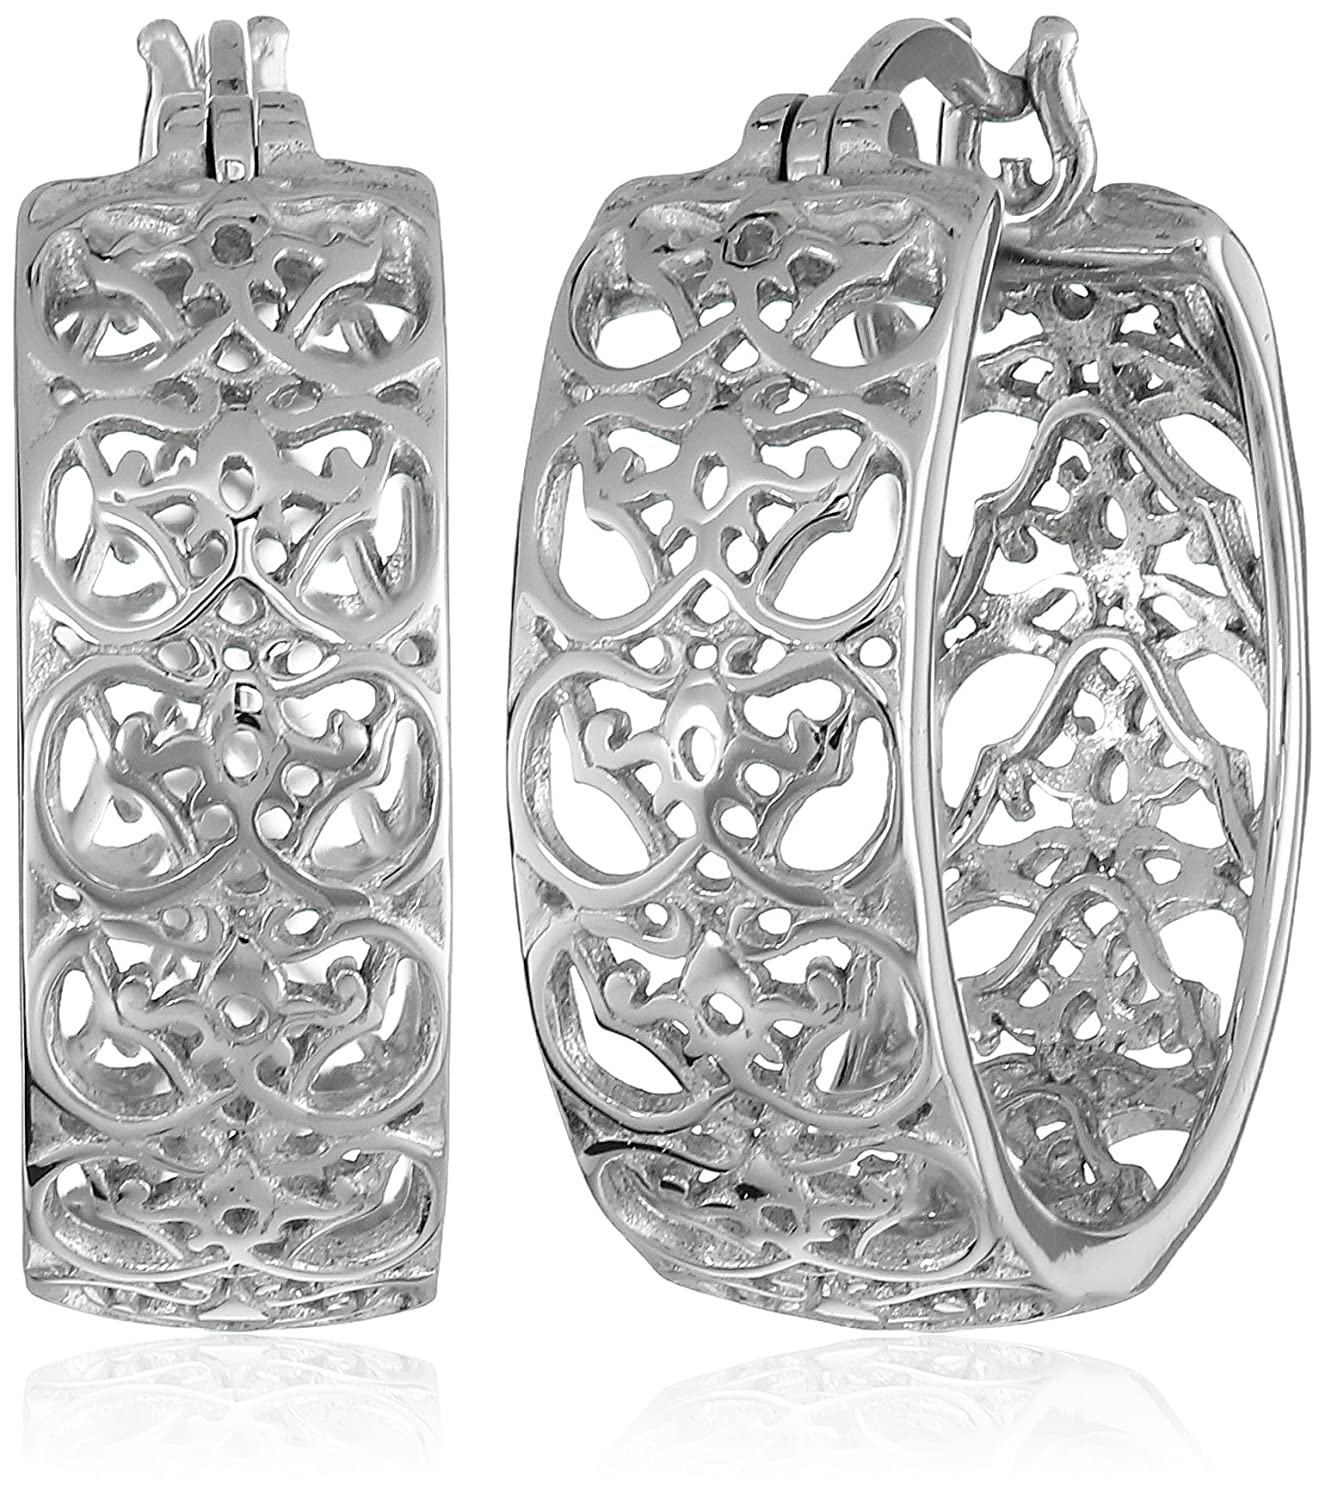 Rhodium-Plated Sterling Silver Filigree Hoop Earrings Amazon Collection R2AHF2A00K